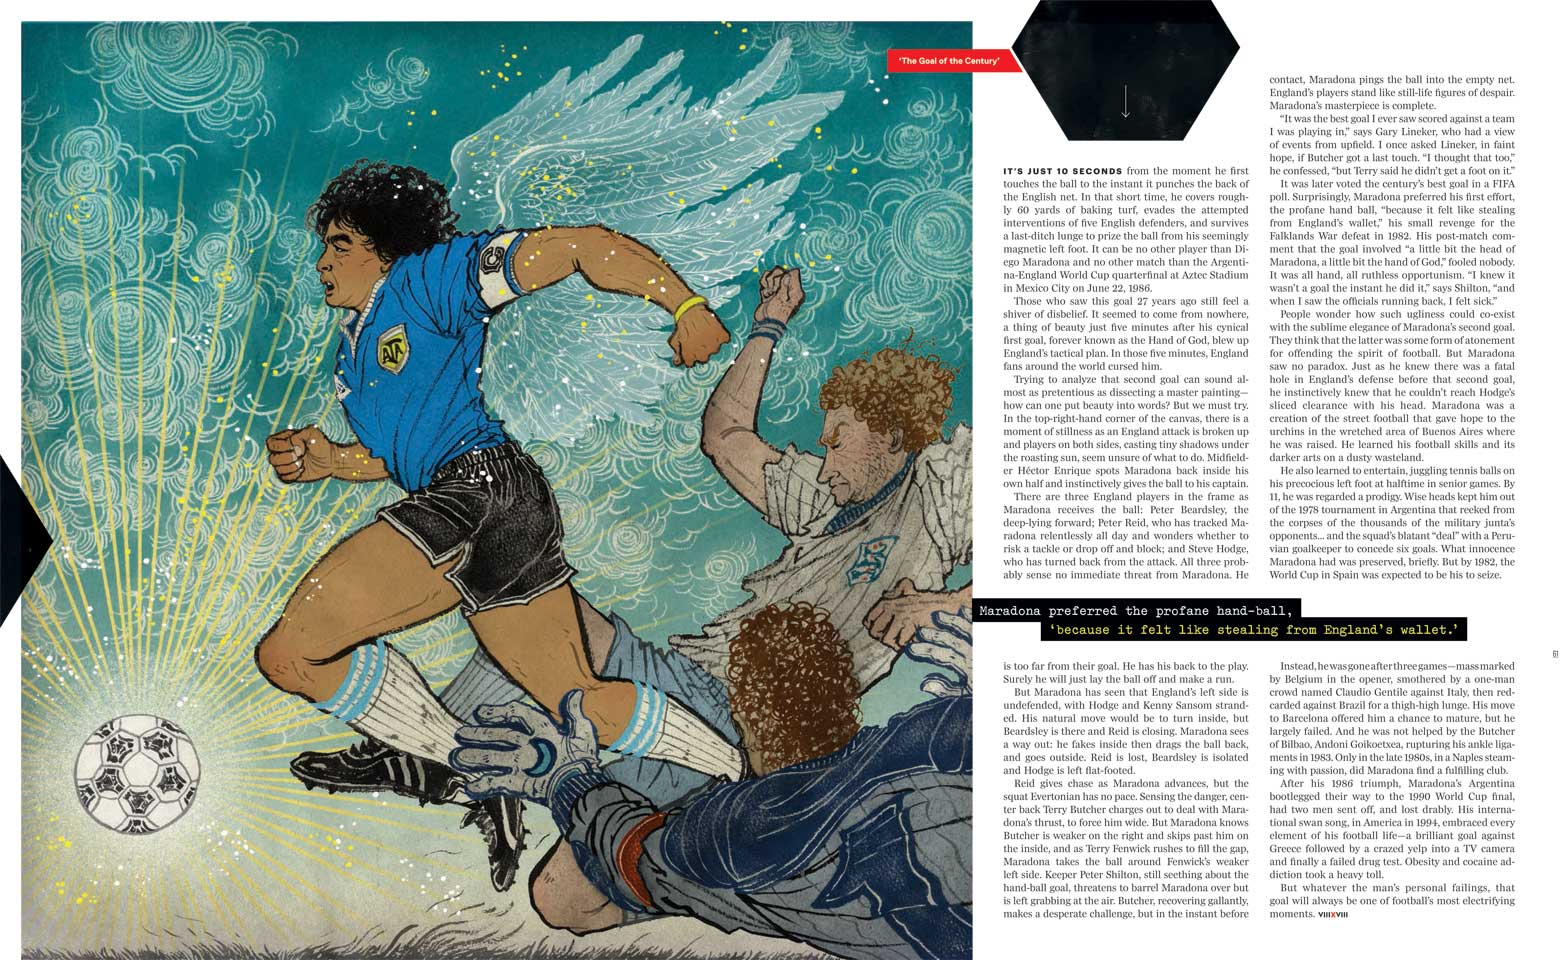 Yuko Shimizu - 8by8 Maradona's famous goals - yuko shimizu diego maradona eight by eight goal of the century